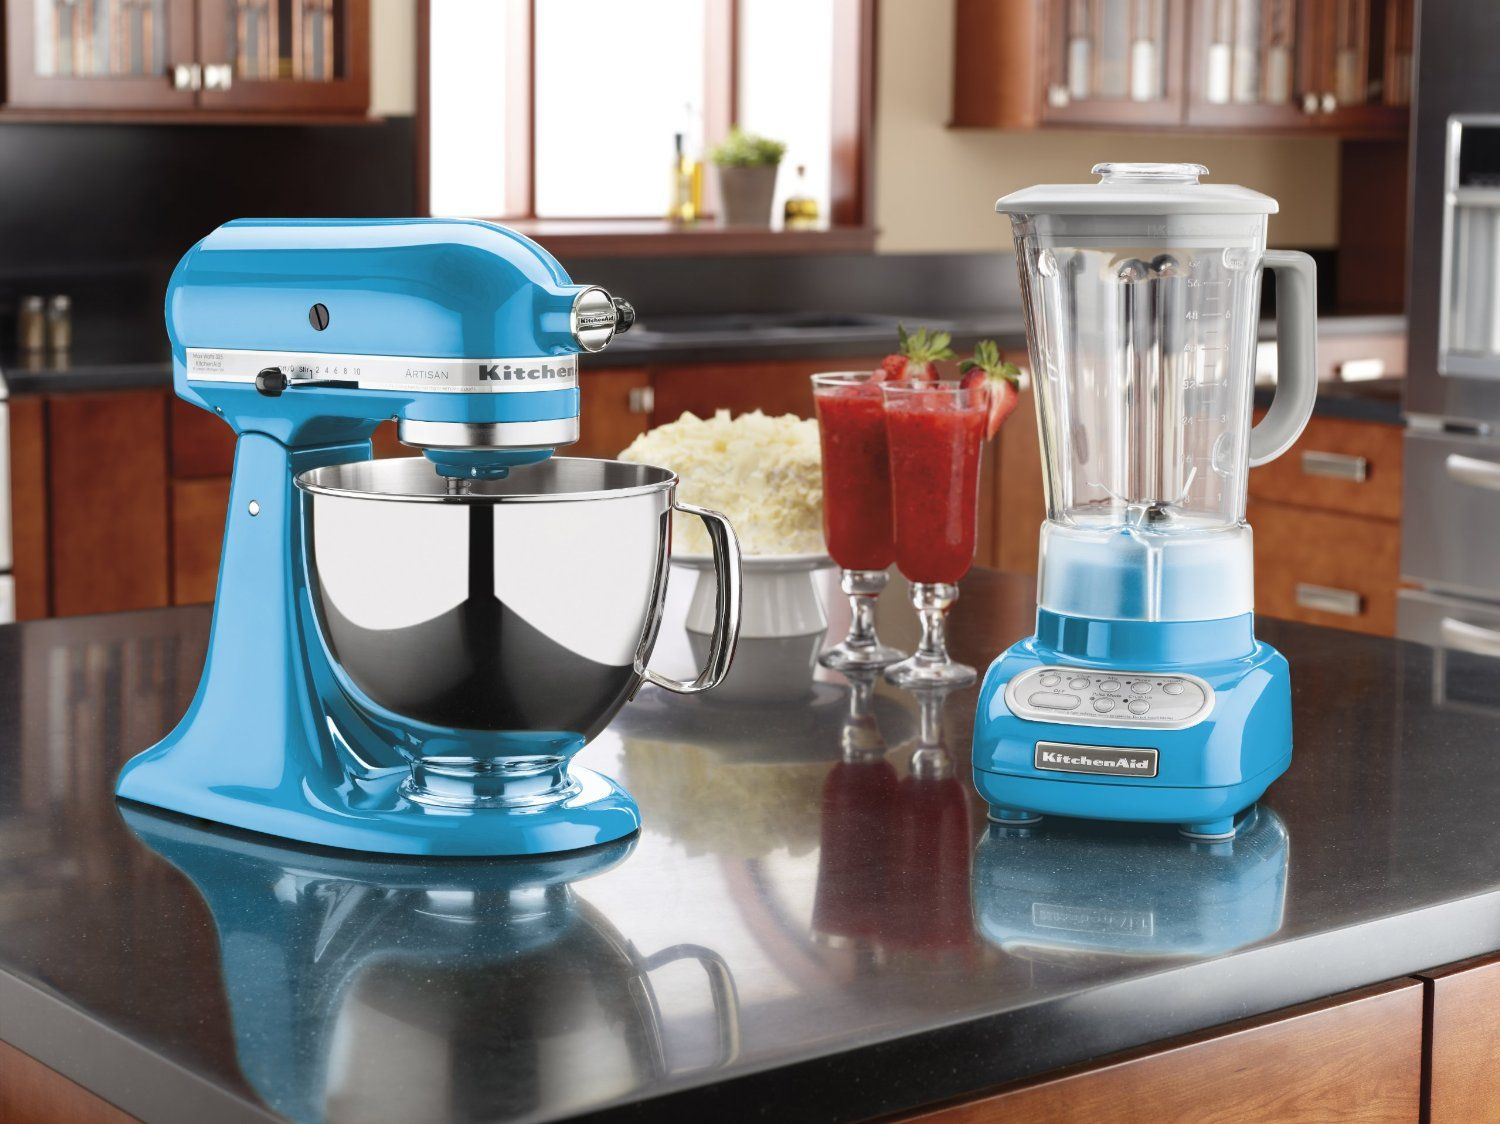 Kitchenaid KSB560CL Crystal Blue | Kitchen Appliances | Pinterest ...